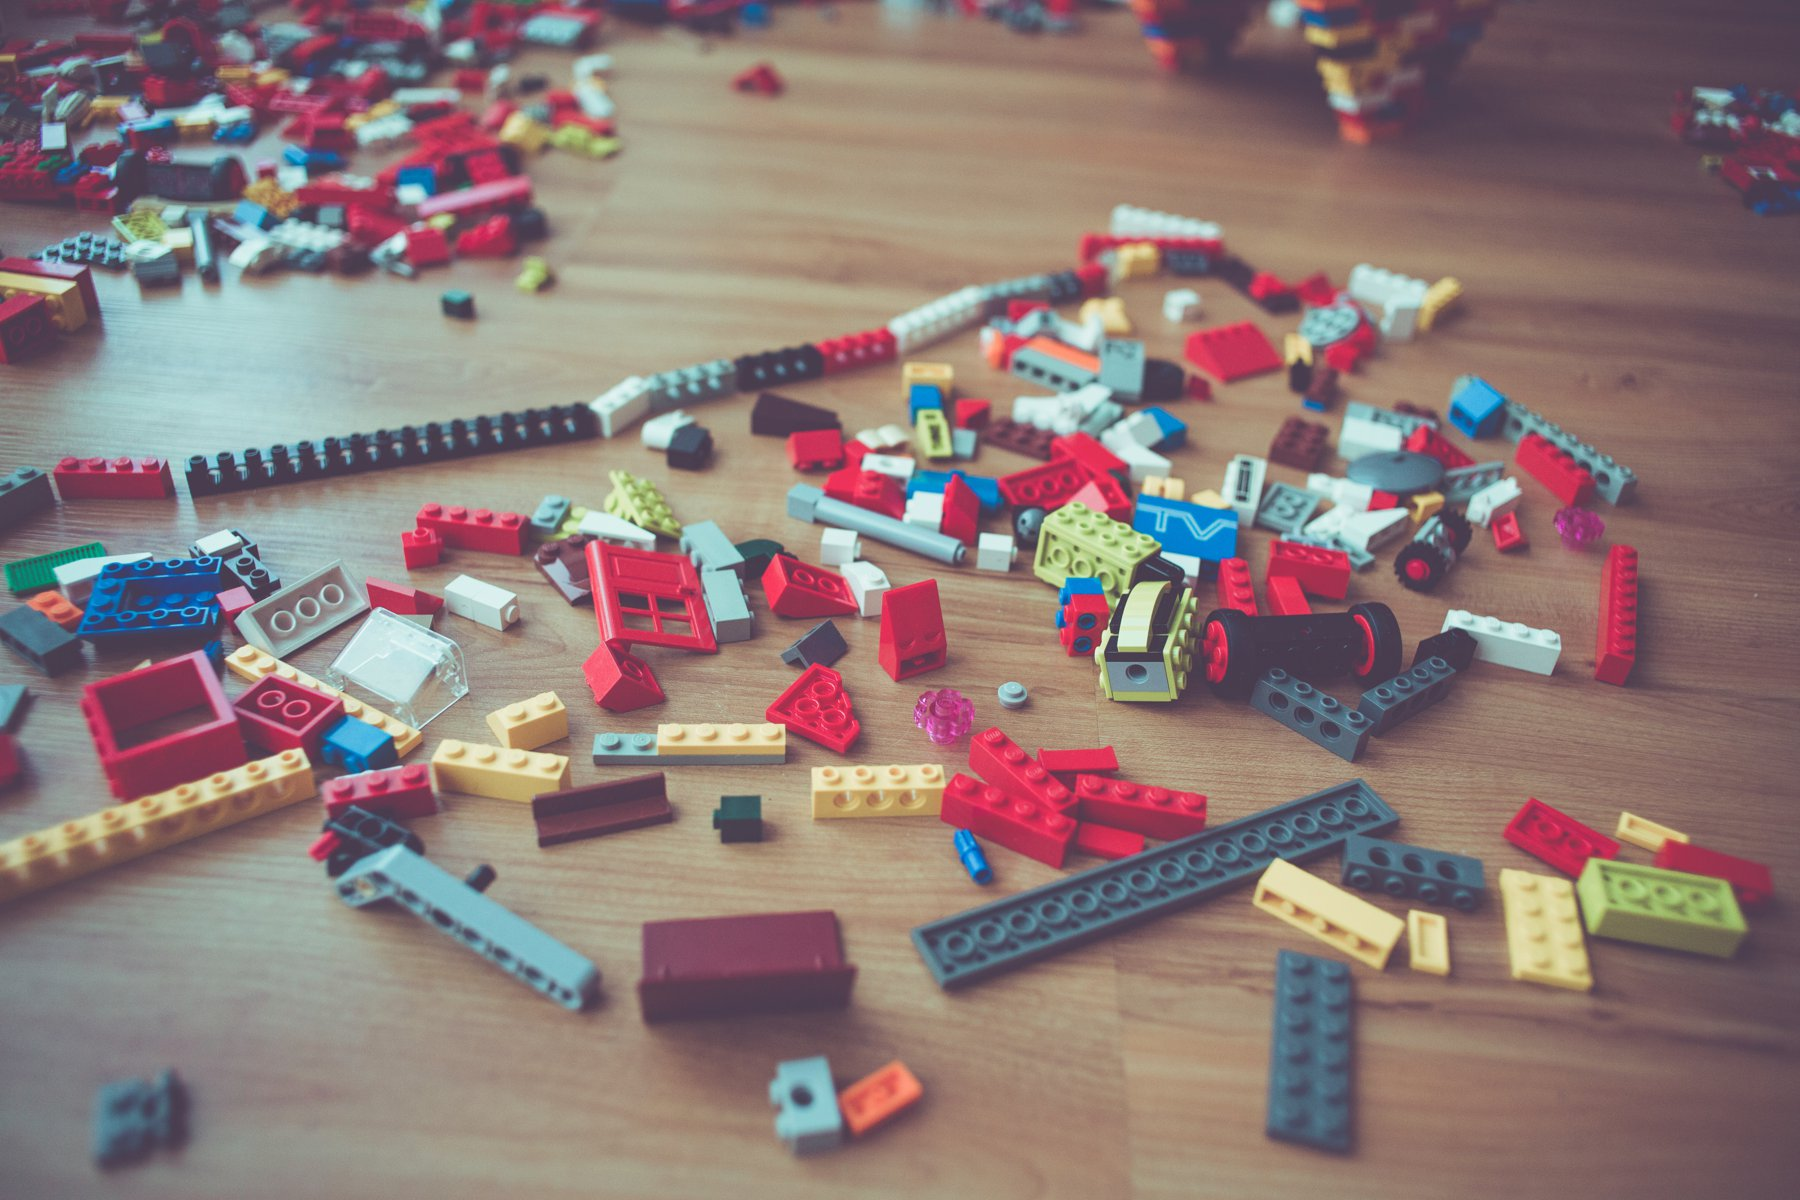 Generating LEGO Images for Training a CNN